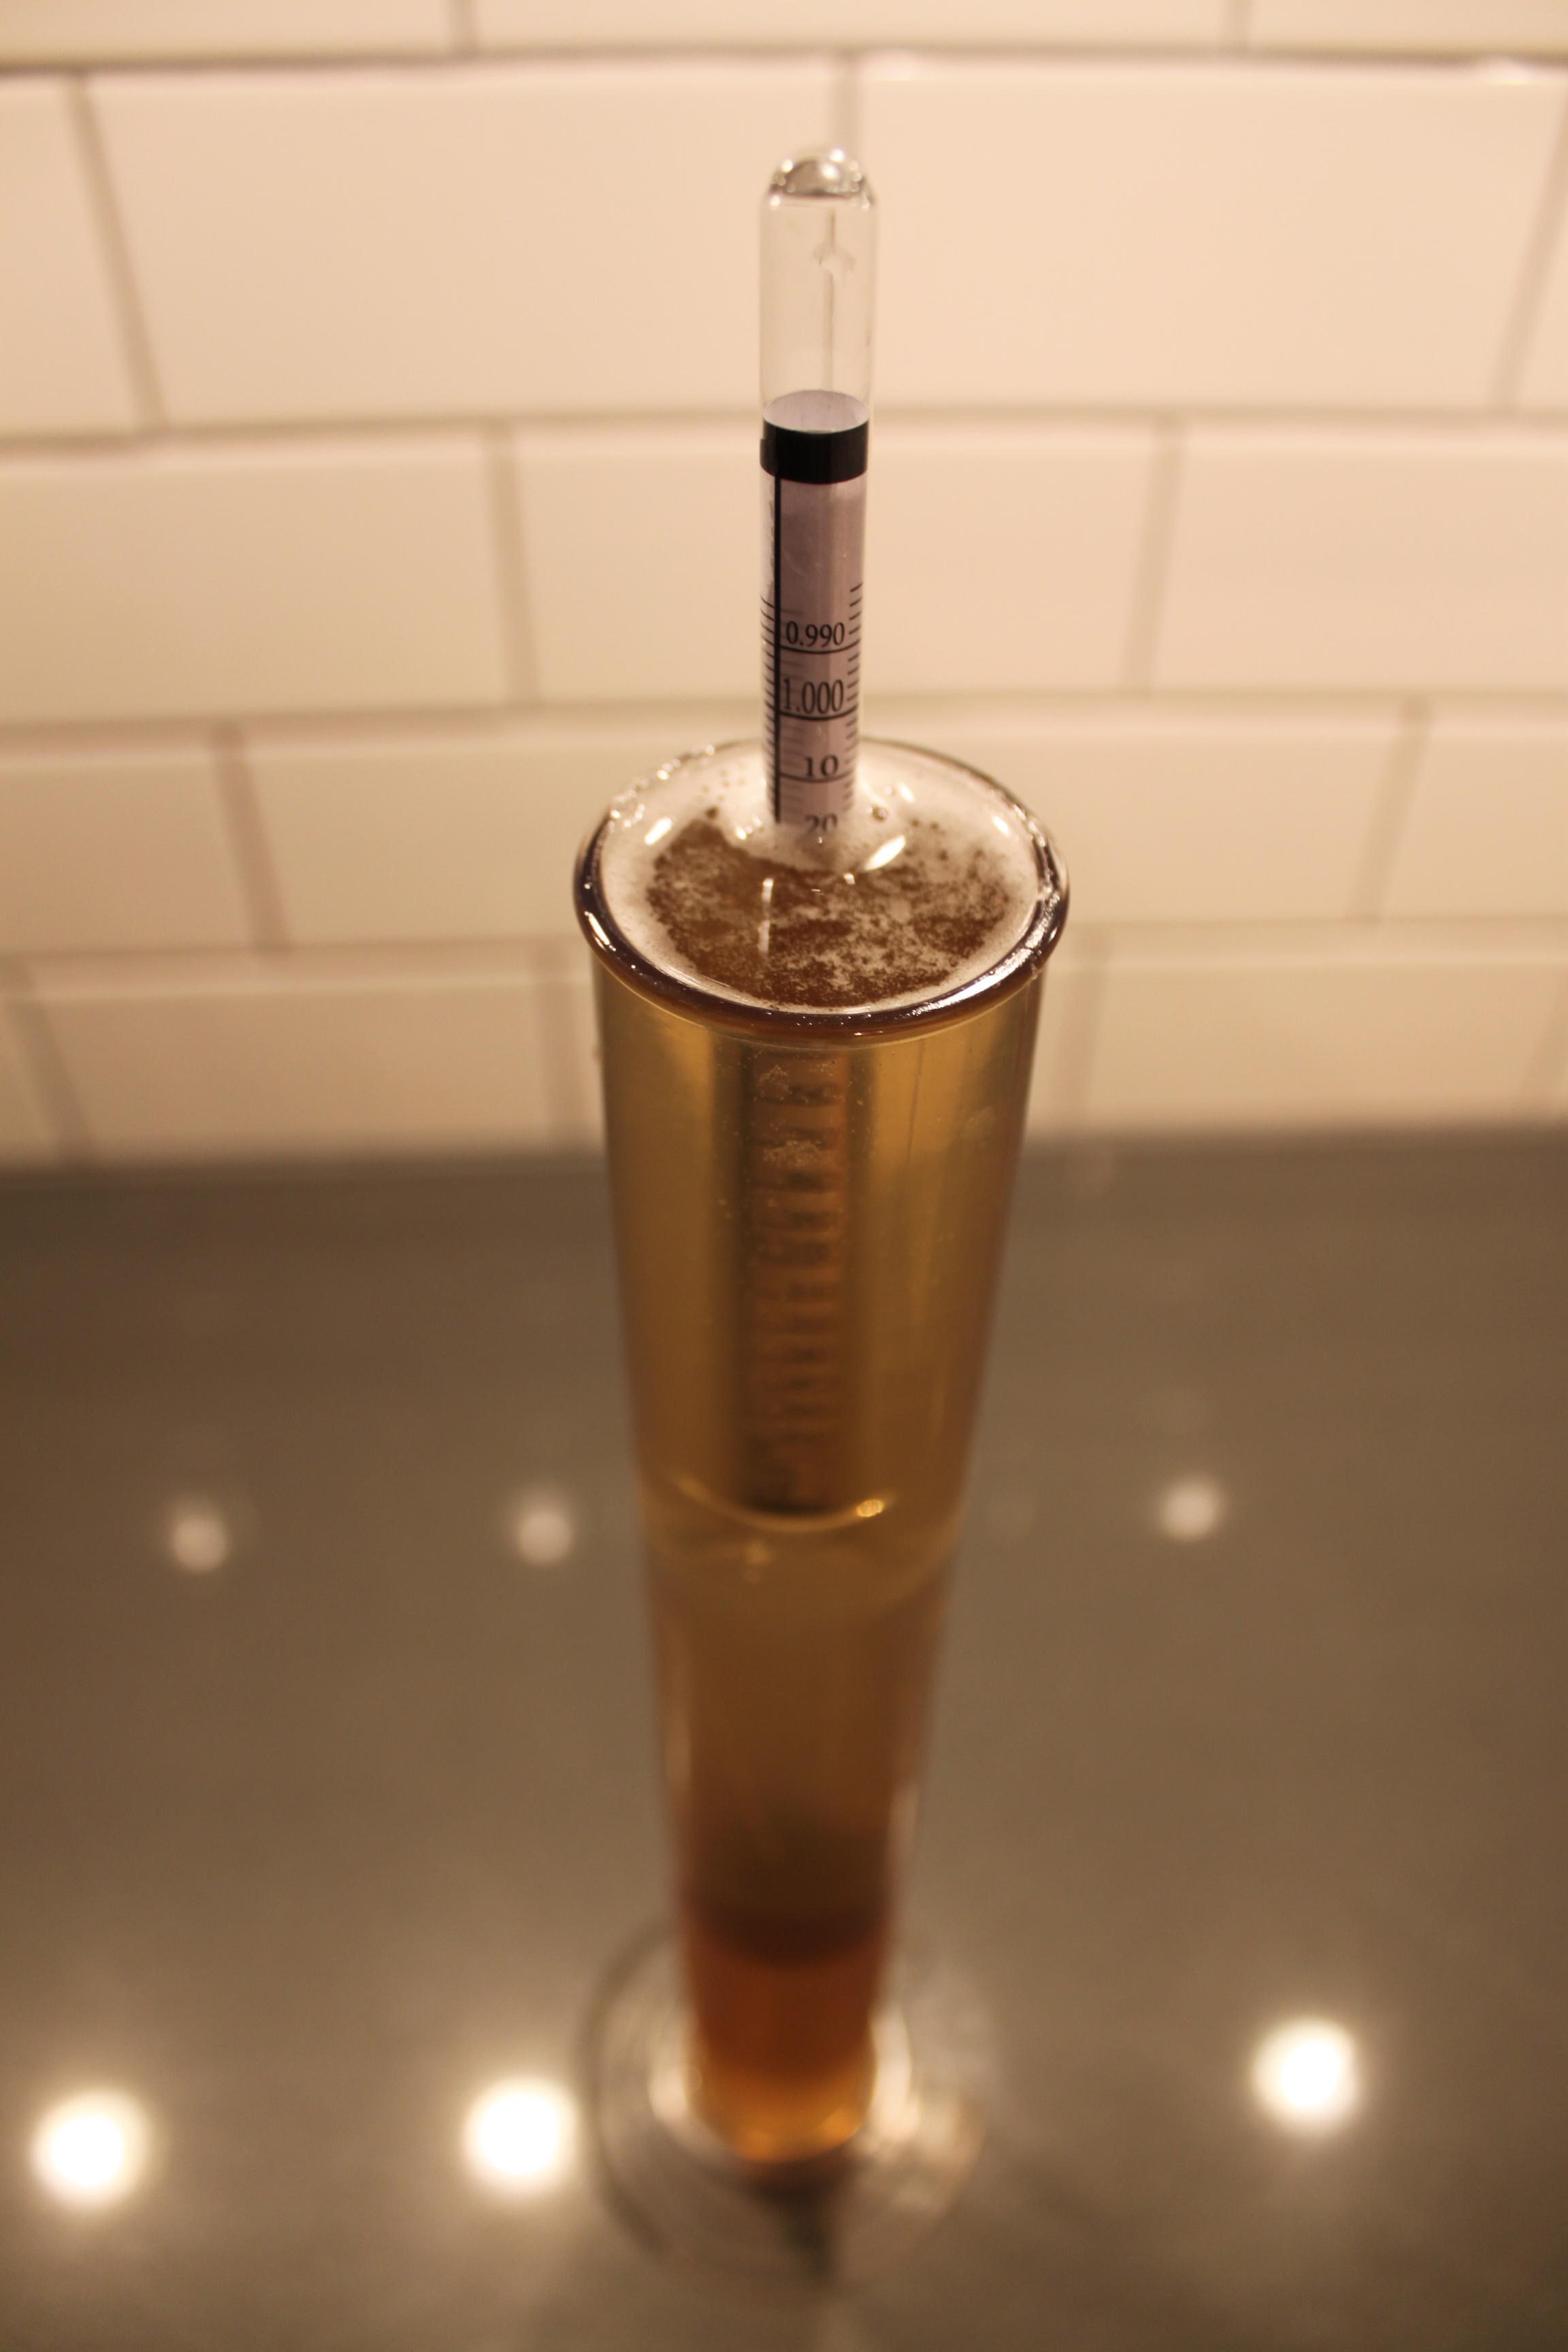 Checking specific gravity with a hydrometer